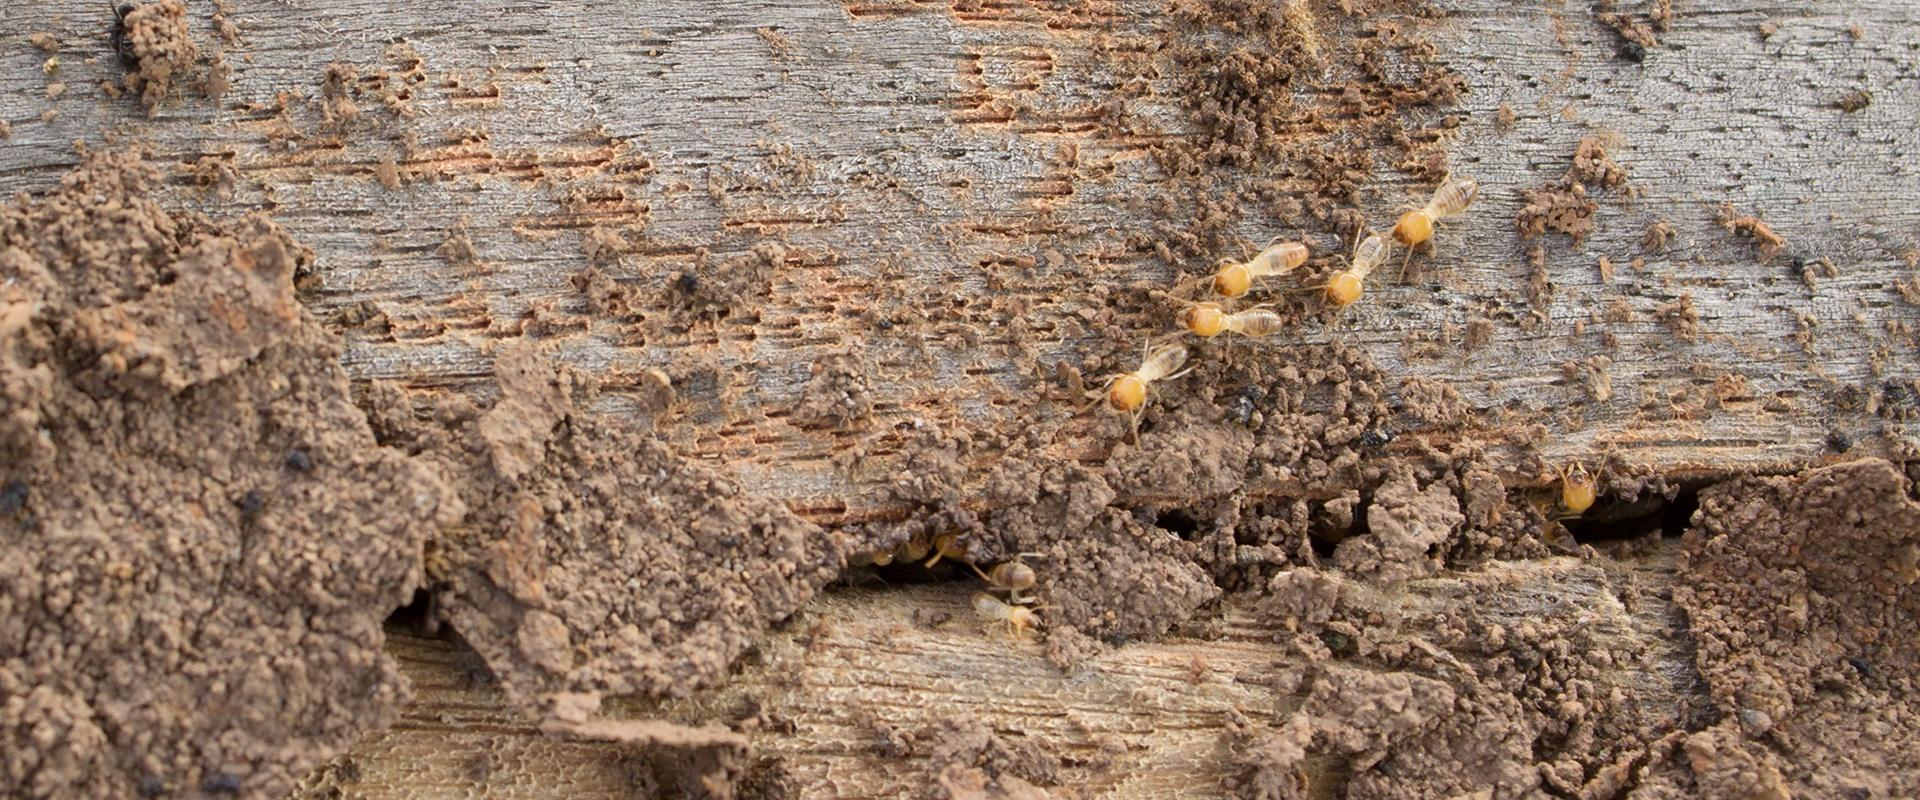 termites burrowing under a house